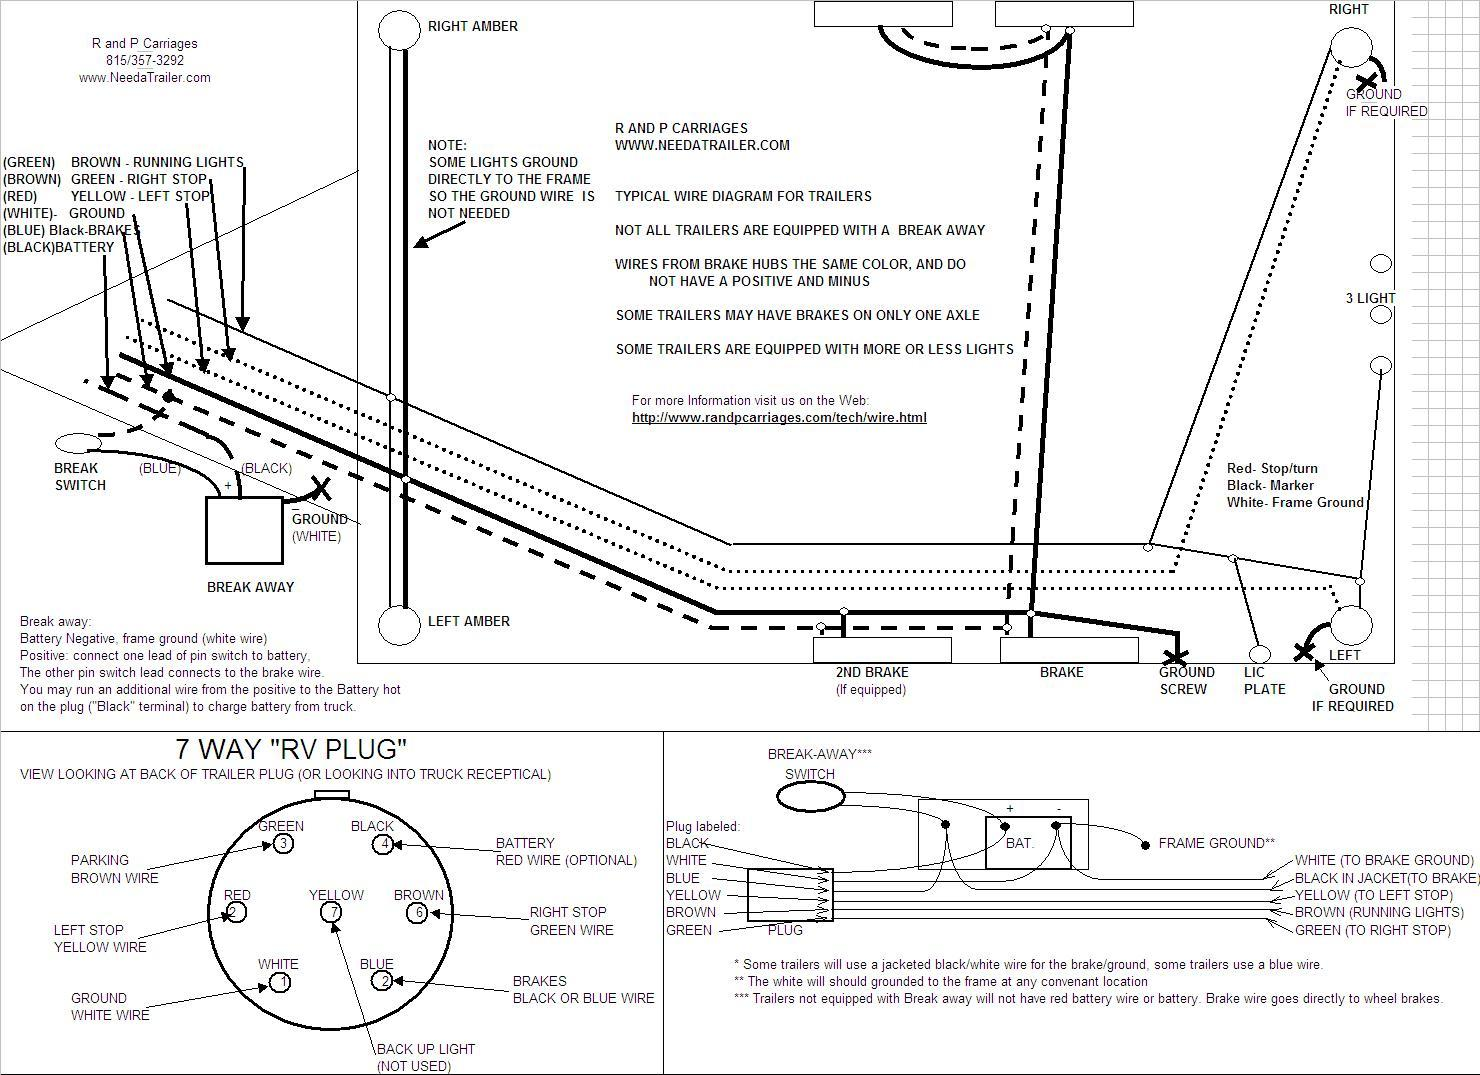 7 way wiring diagram brake controller installation instructions 3 Prong Plug Wiring Diagram at edmiracle.co